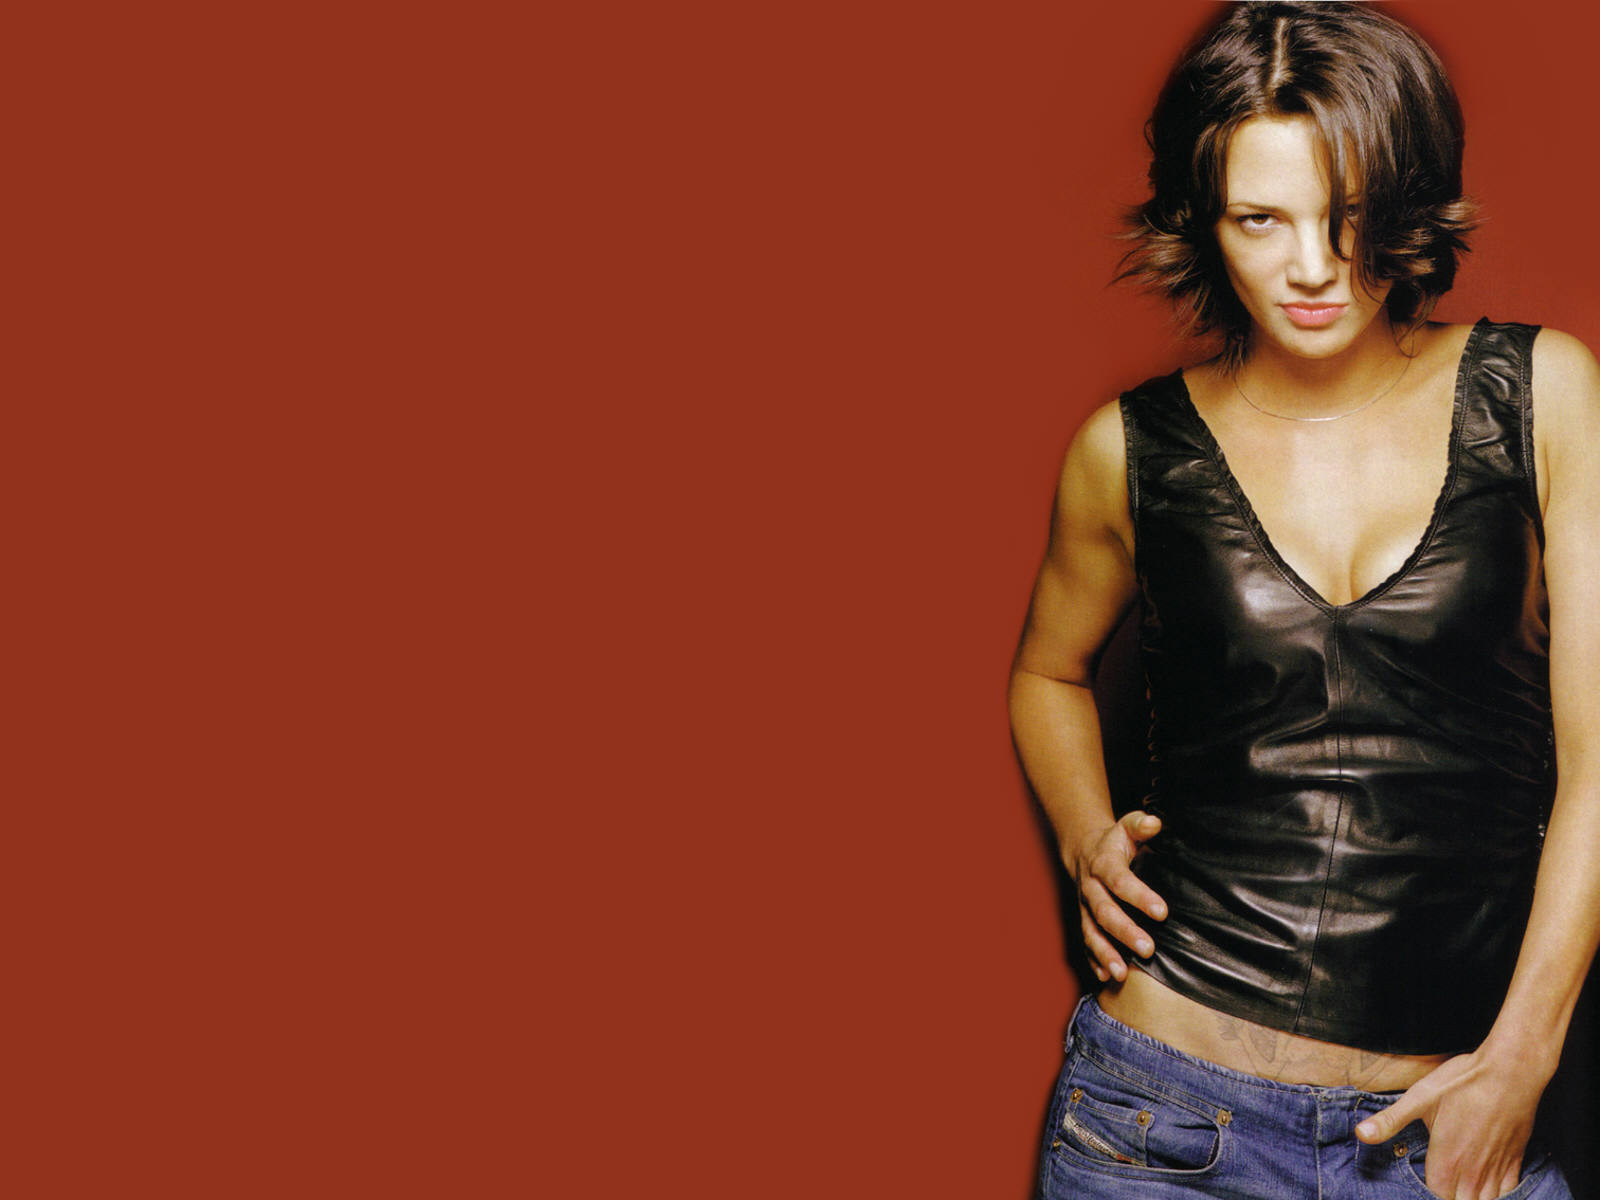 1600x1200 - Asia Argento Wallpapers 1